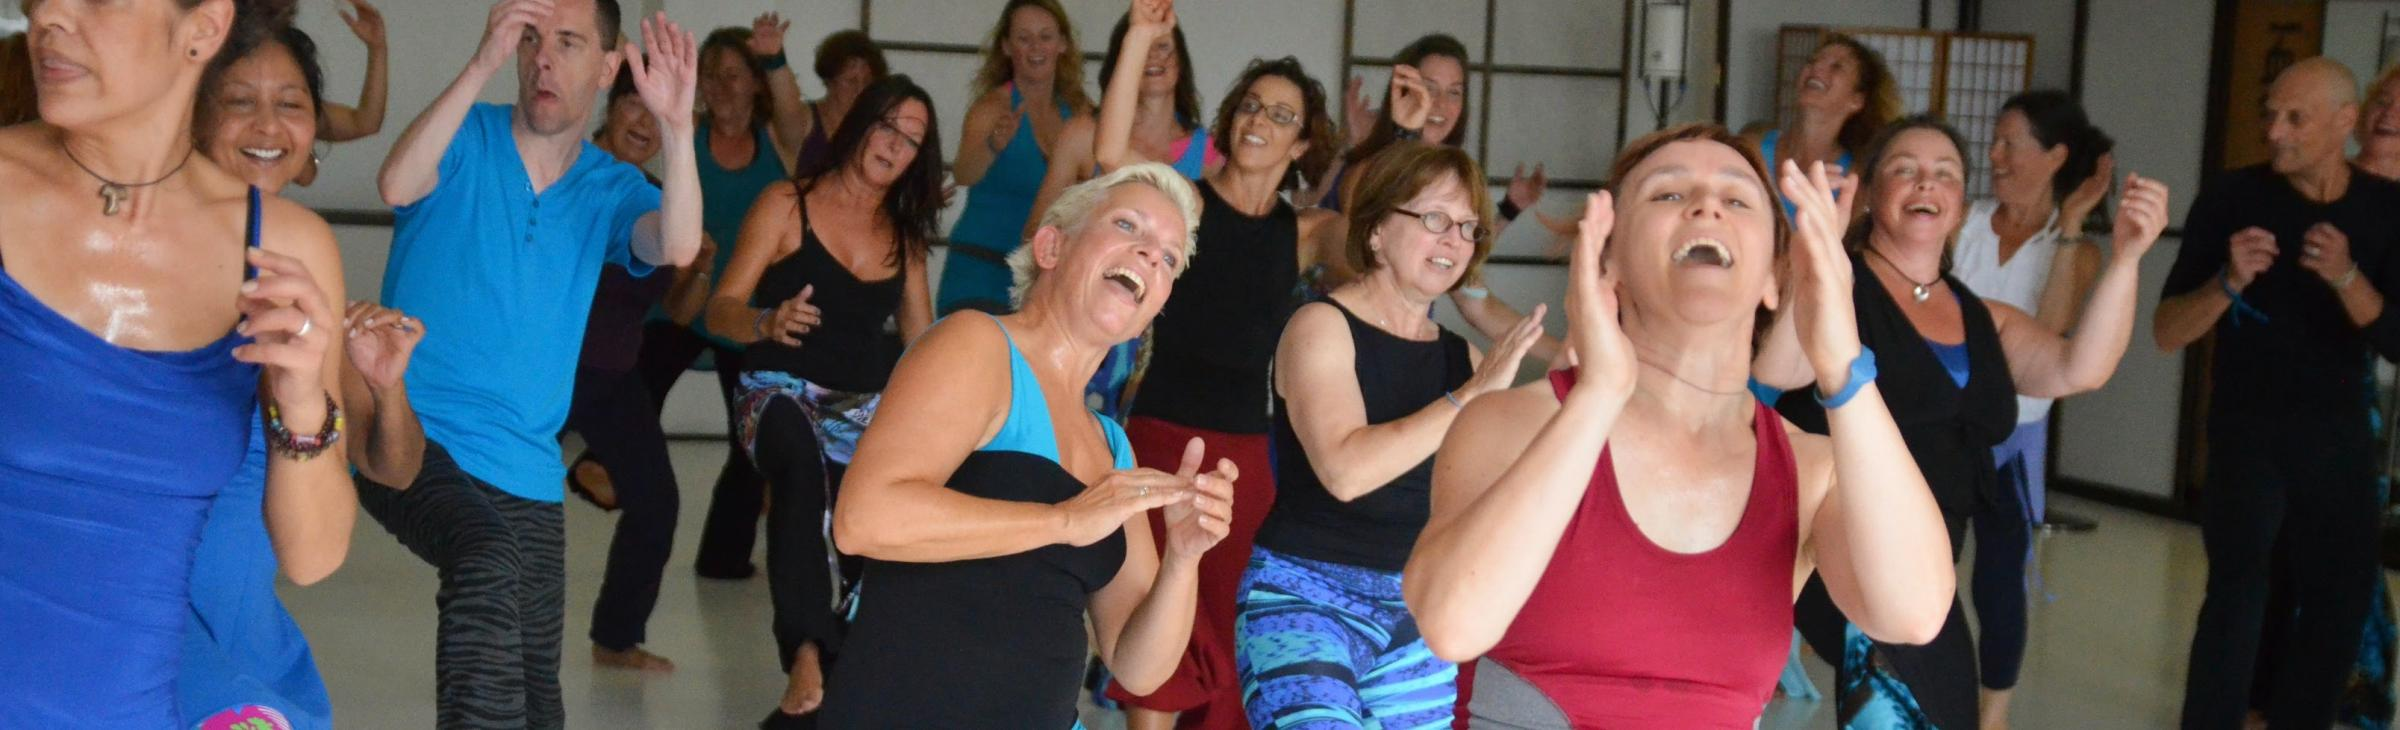 Nia  - Joyful, Holistic Dance-Movement Class for Body and Soul